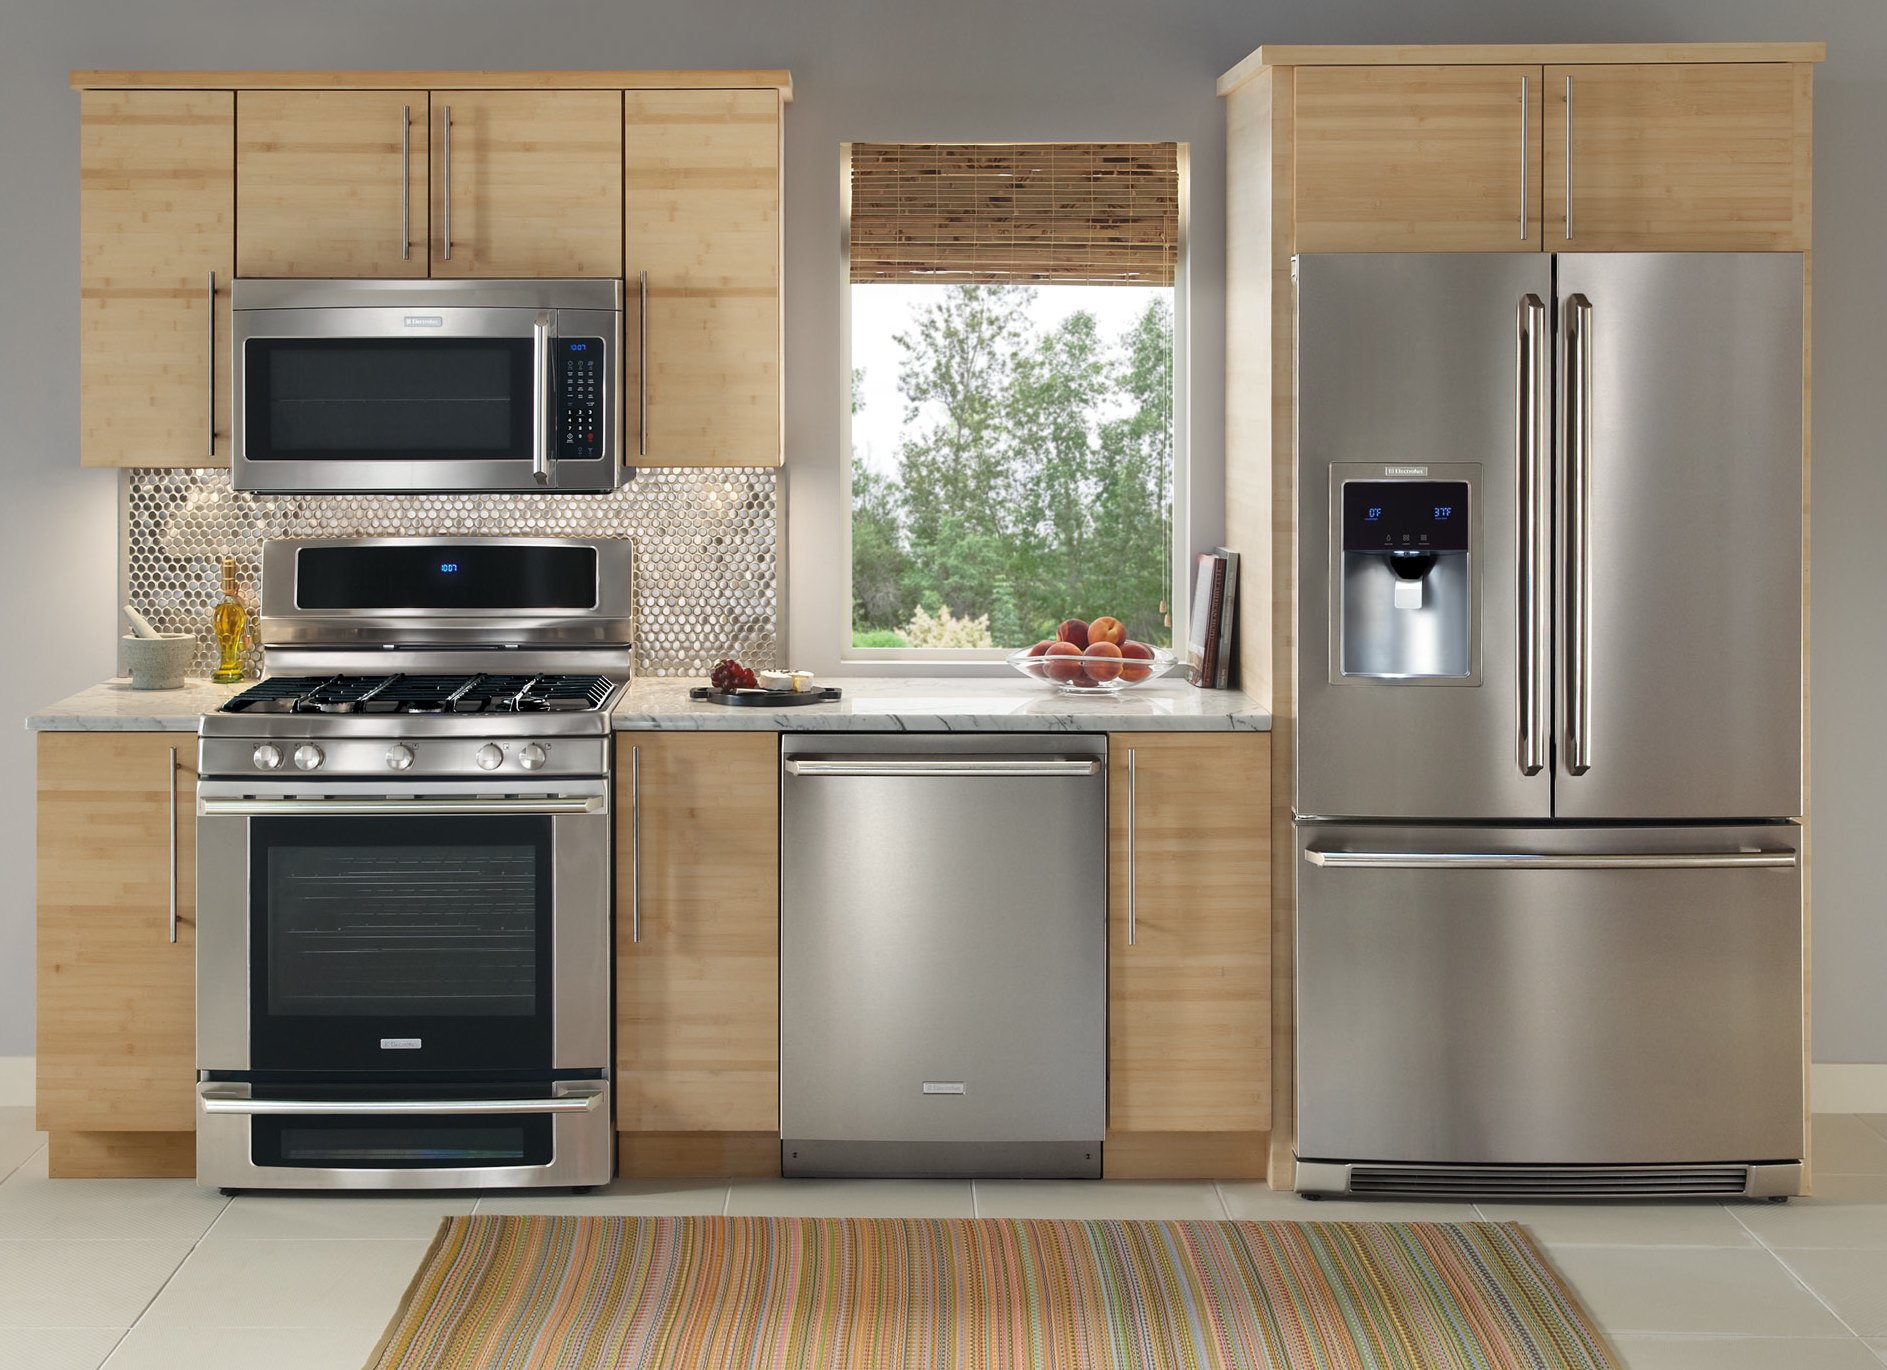 Appliance Repair in Tampa